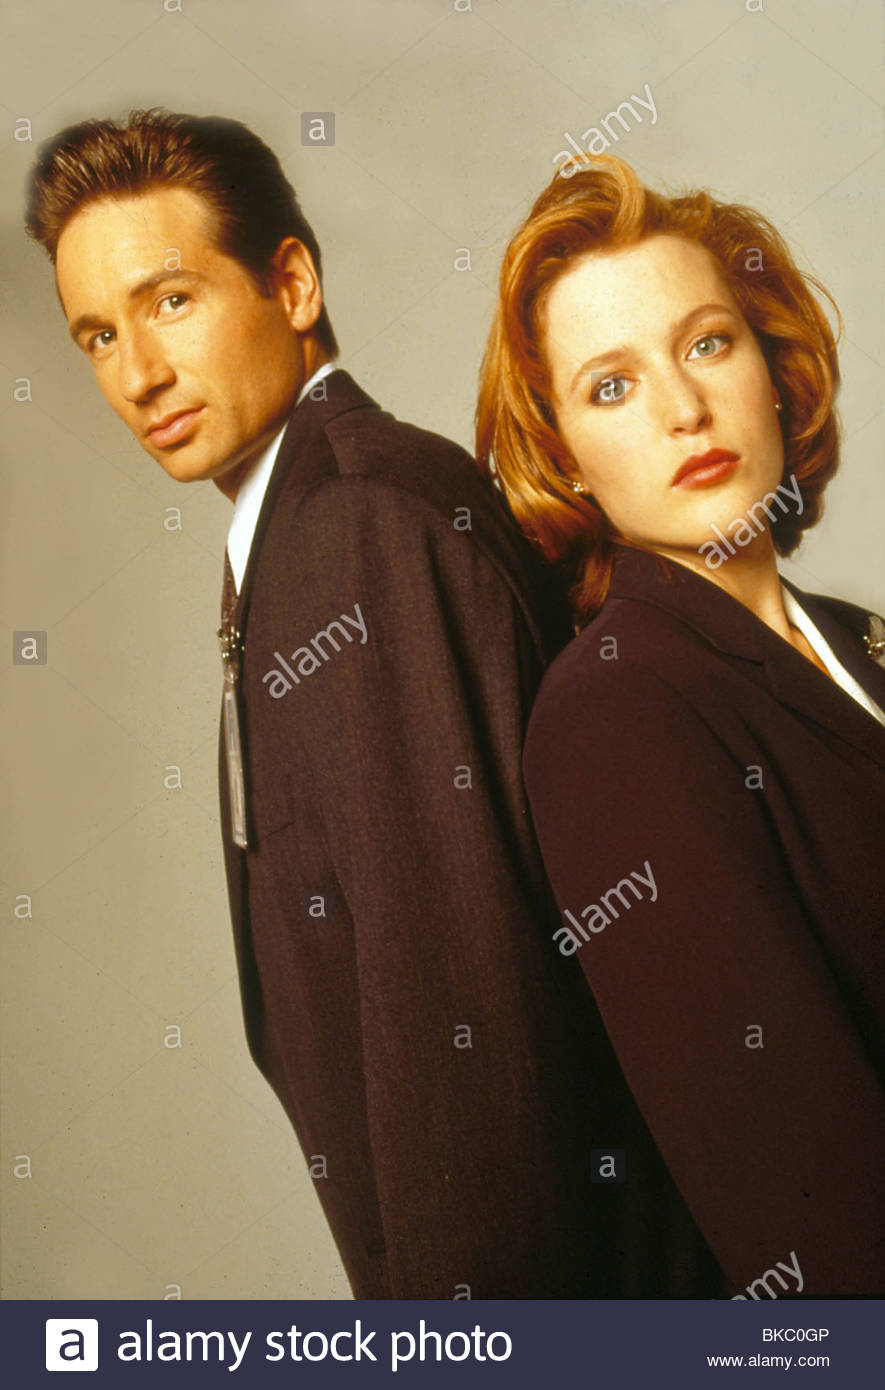 THE X-FILES (TV) GILLIAN ANDERSON, DAVID DUCHOVNY XFIL 310 - Stock Image